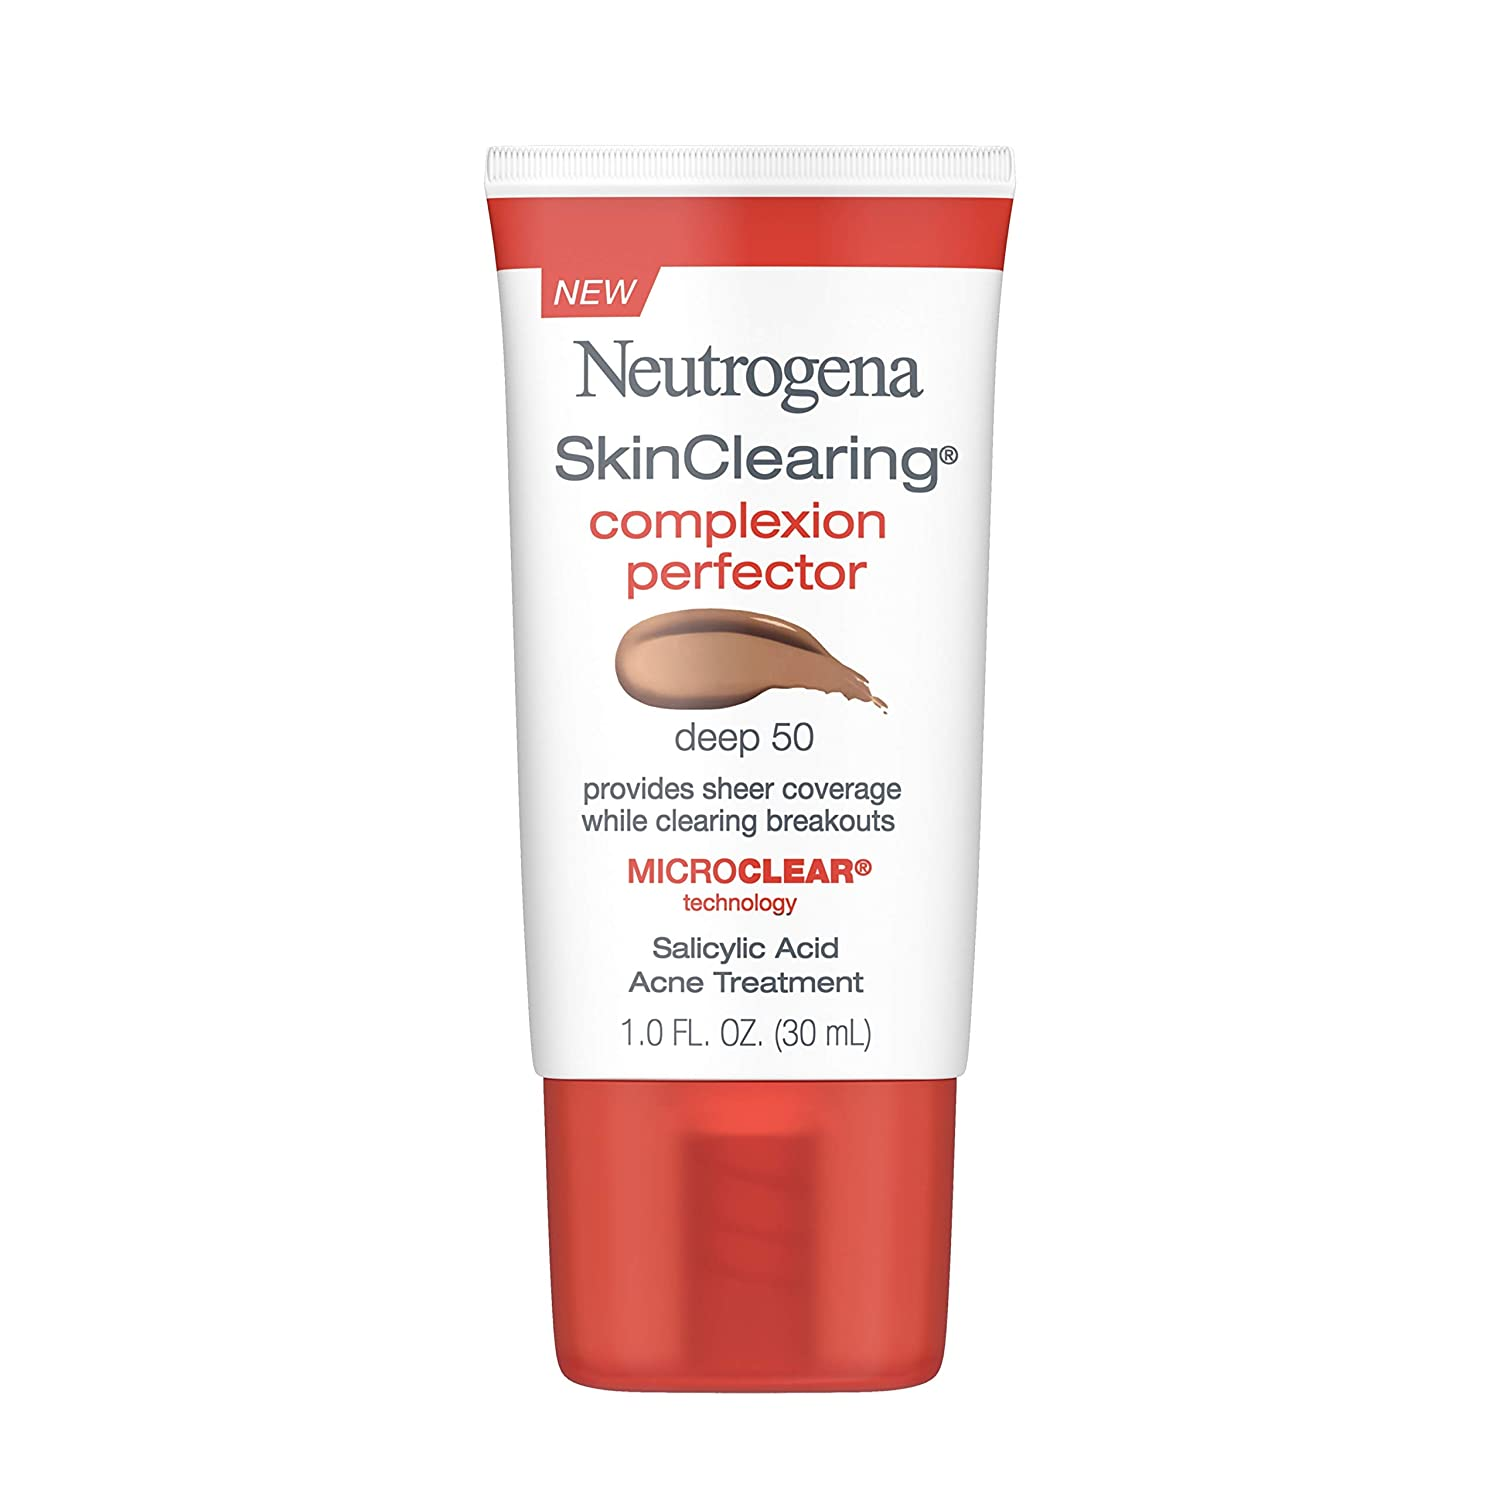 Neutrogena SkinClearing Complexion Perfector Sheer Tinted Facial Moisturizer with Salicylic Acid Acne Medicine, Non-Comedogenic, Skin-Tone Evening and Pore Minimizing, Deep, 1 fl. oz (Pack of 2)